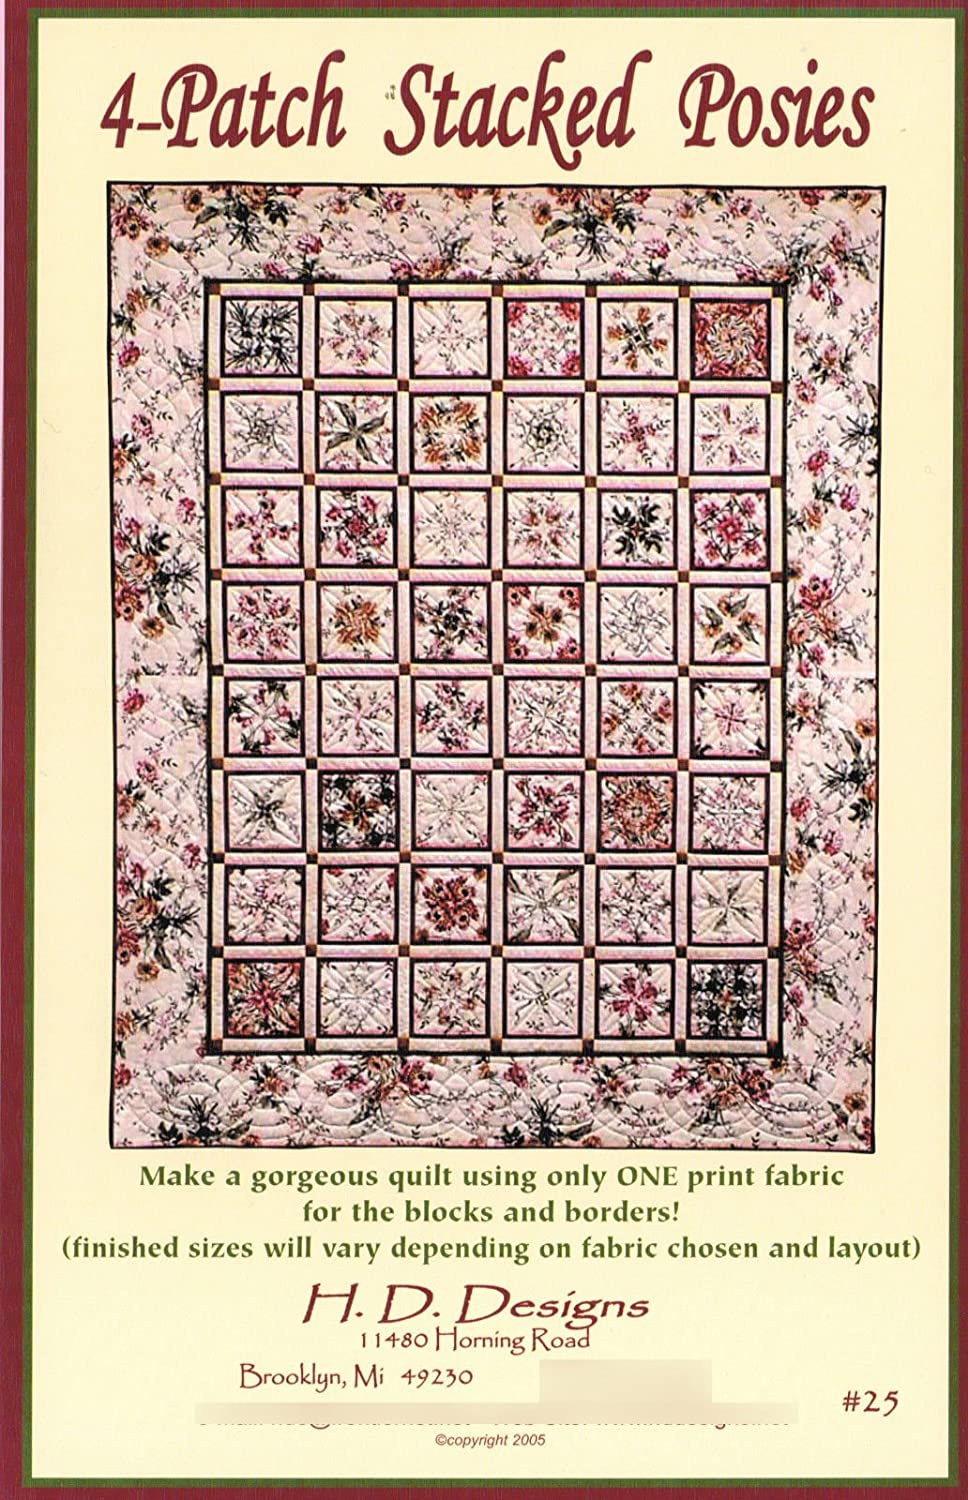 for both the Blocks /& Border H.D.Designs Entire Quilt Made With Only 1 Print Fabric 4-Patch Stacked Posies Quilt Pattern No HDD25